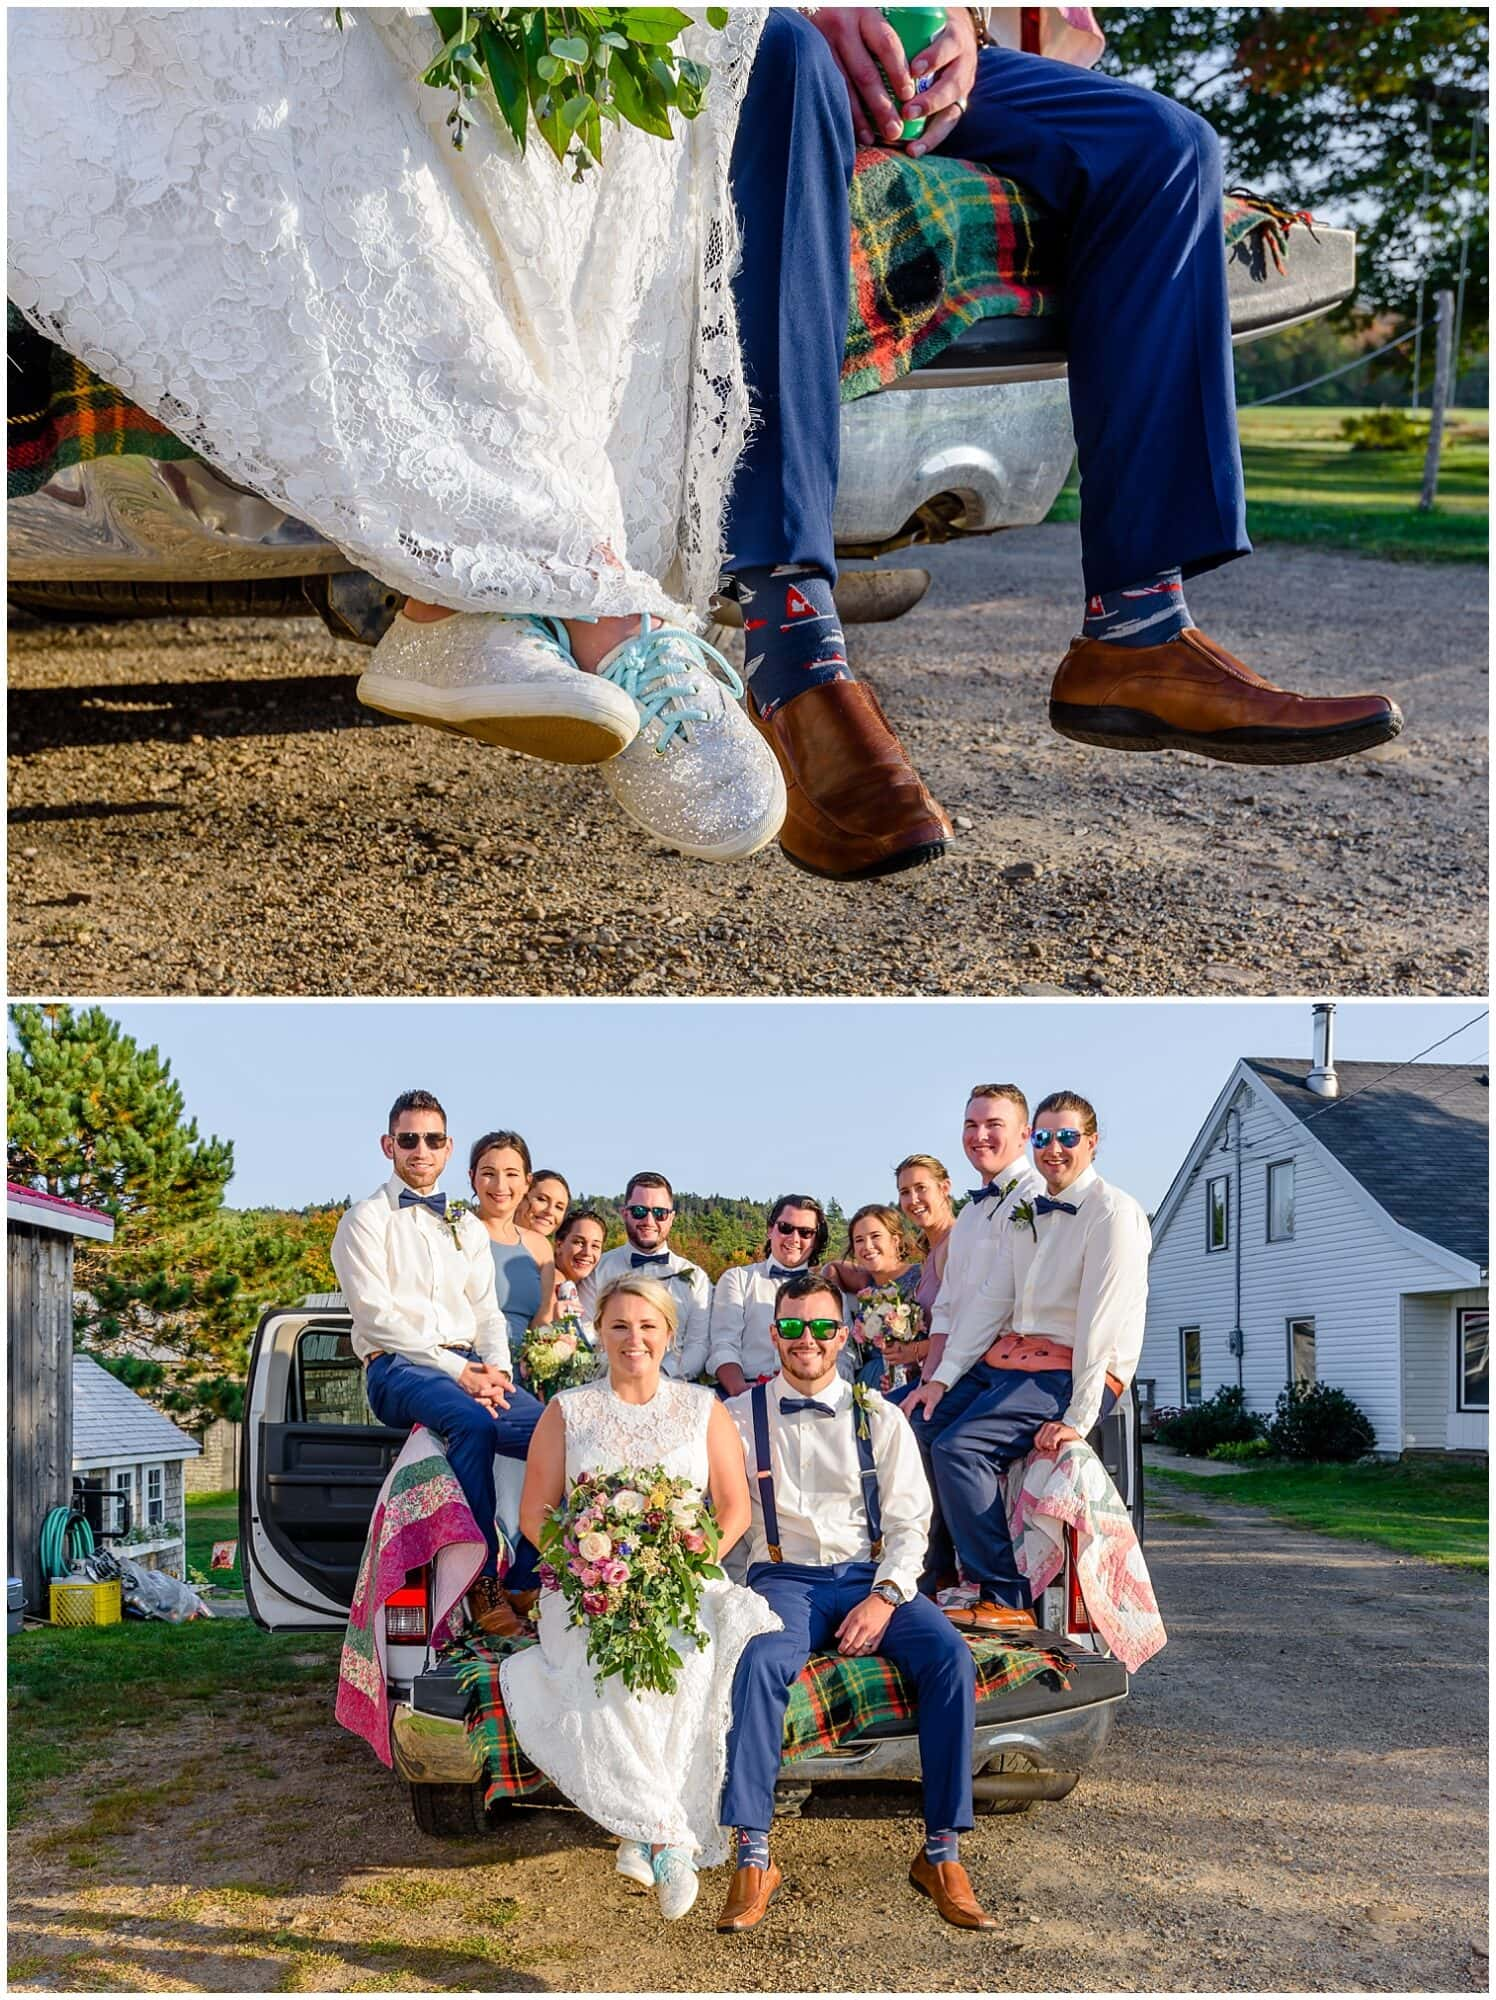 The wedding party with the bride and groom getting on a truck to go to a new location for more wedding photos at the Barn at Sadie Belle Farm.